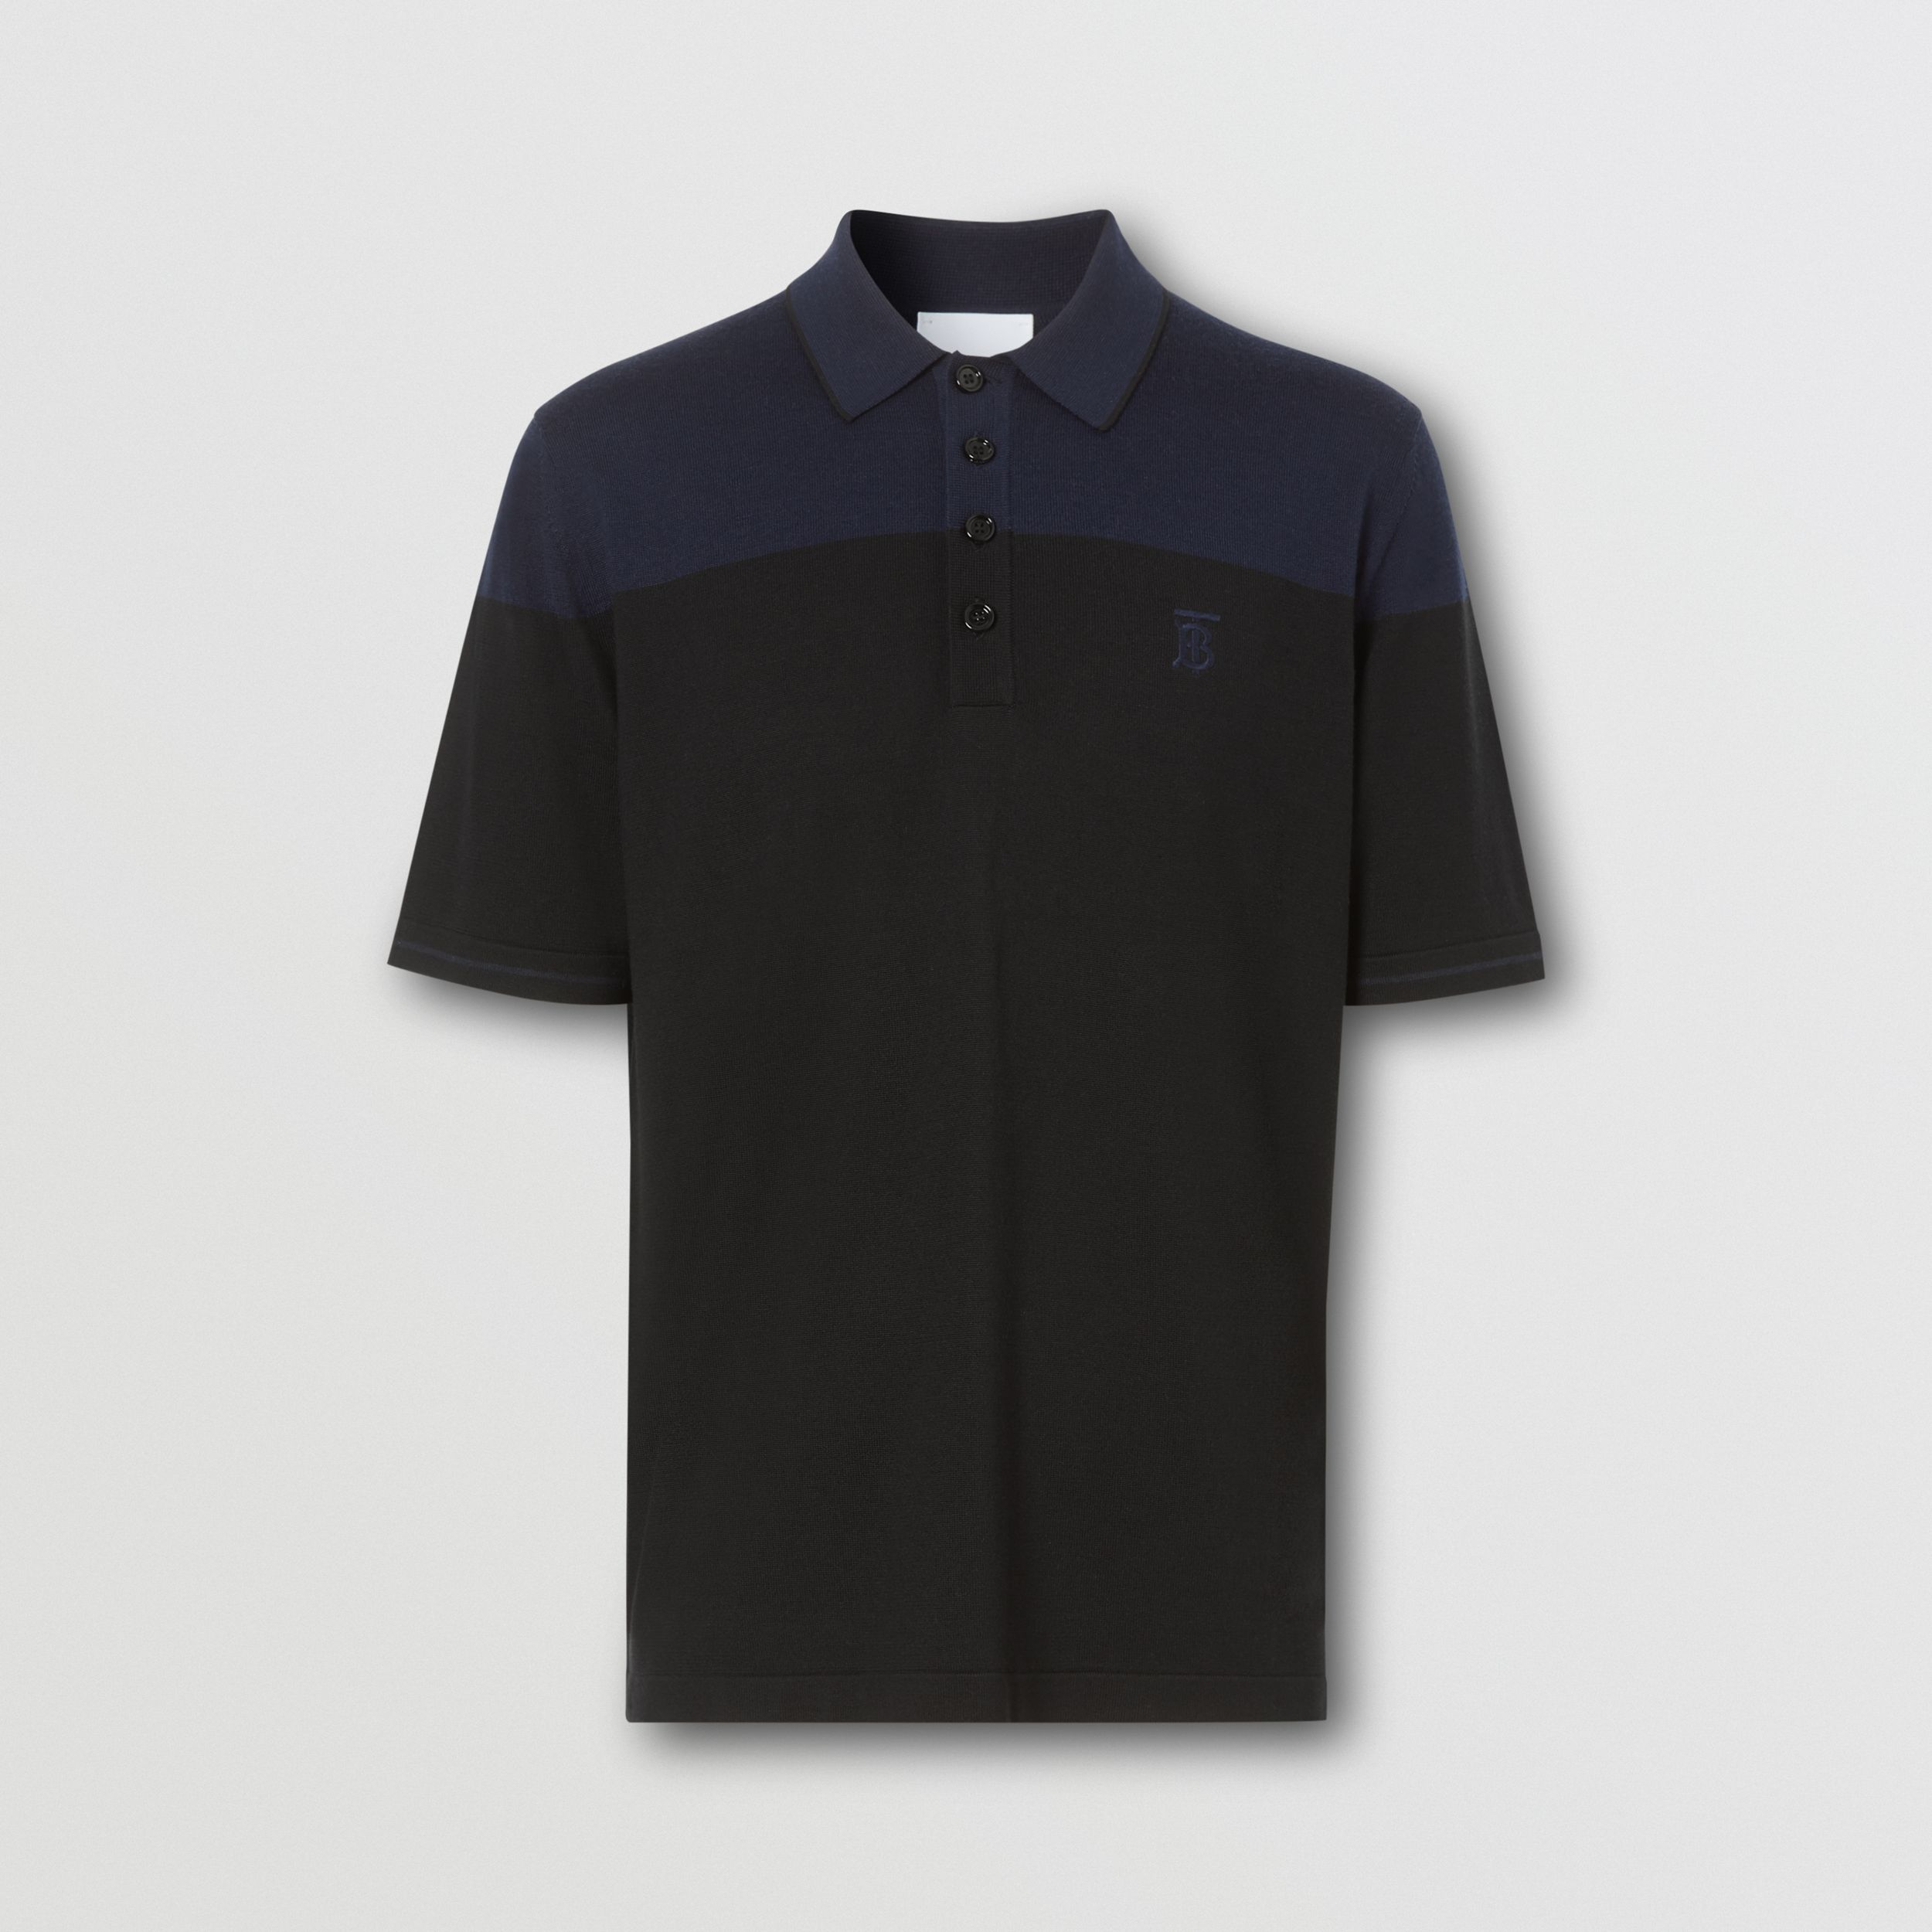 Monogram Motif Two-tone Silk Cashmere Polo Shirt in Black/navy - Men | Burberry - 4